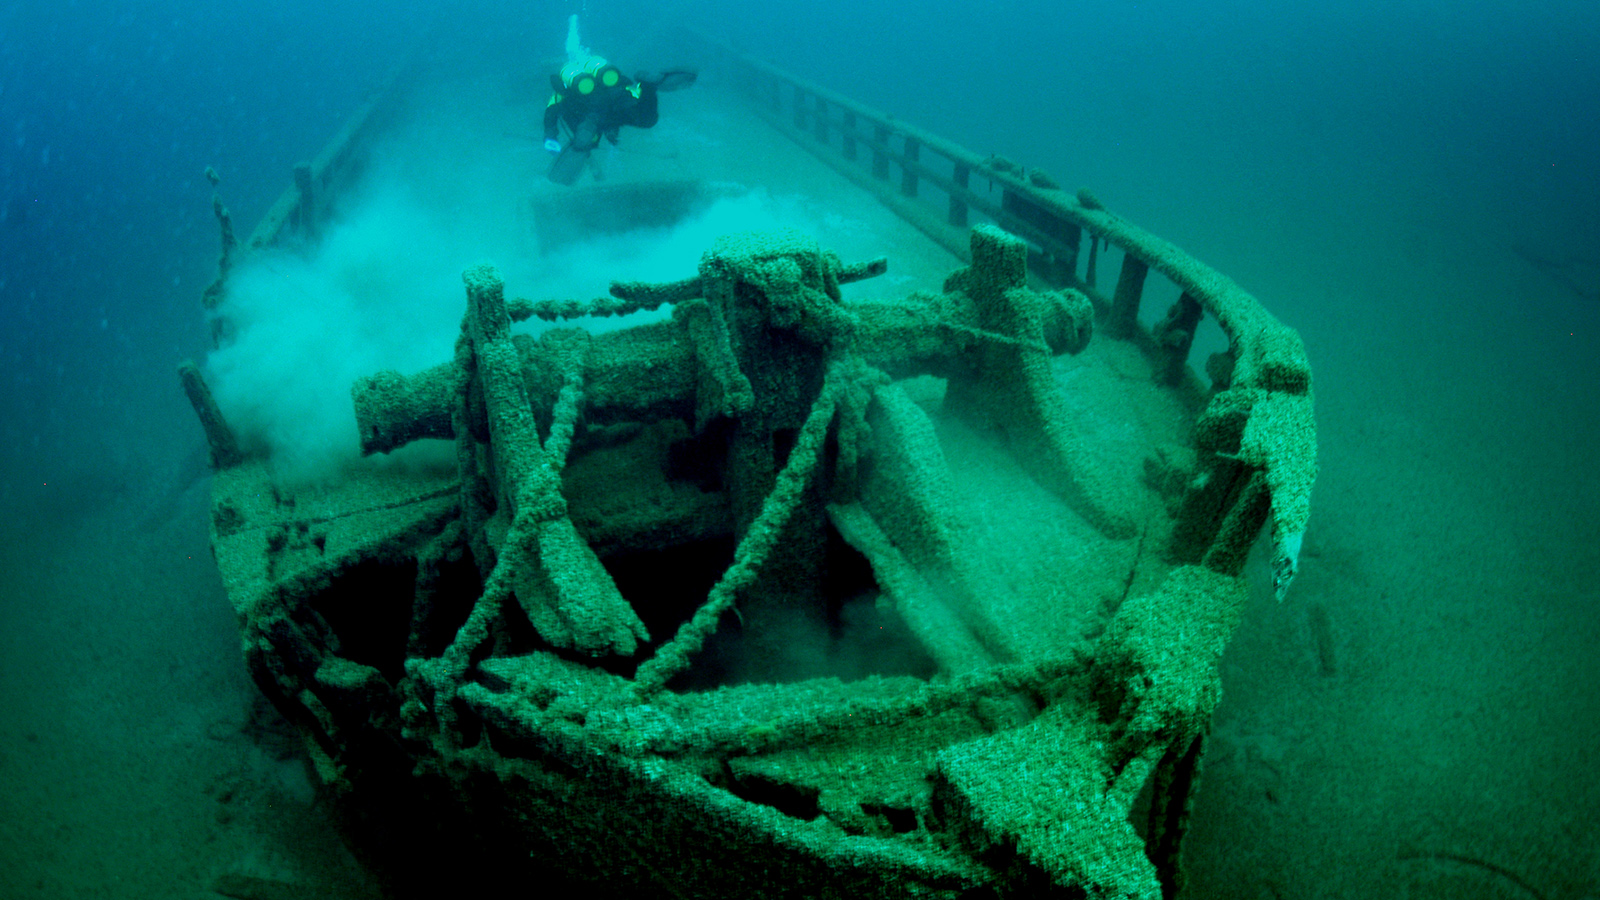 Underwater photo of diver looking down at the deck of a shipwreck